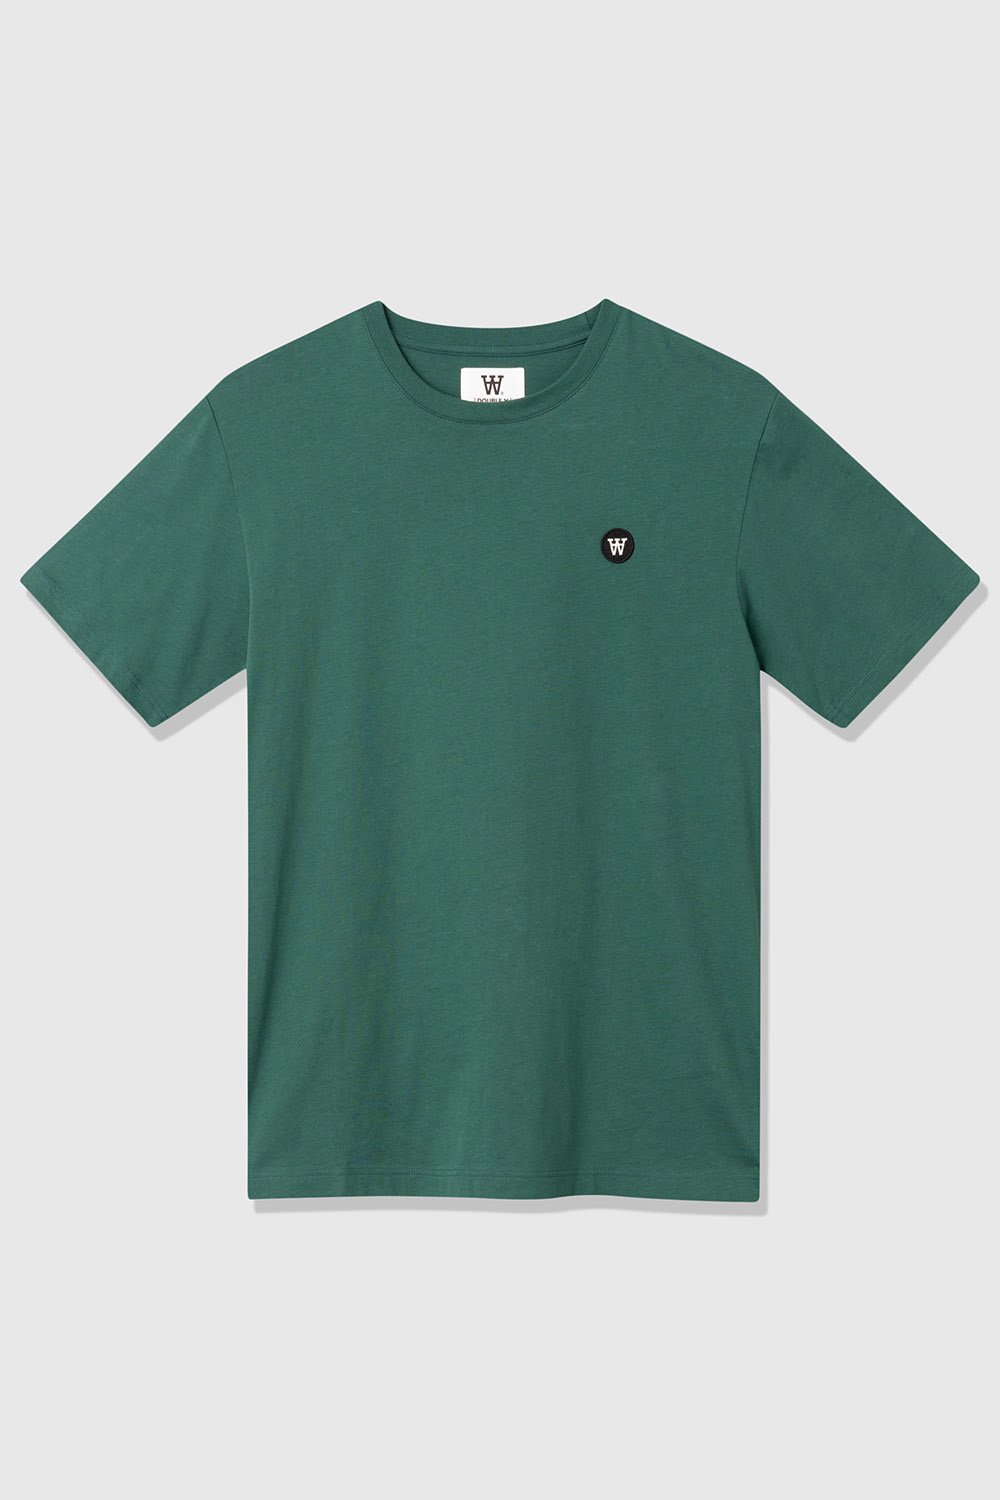 Ace Double A T-Shirt Faded Green-1